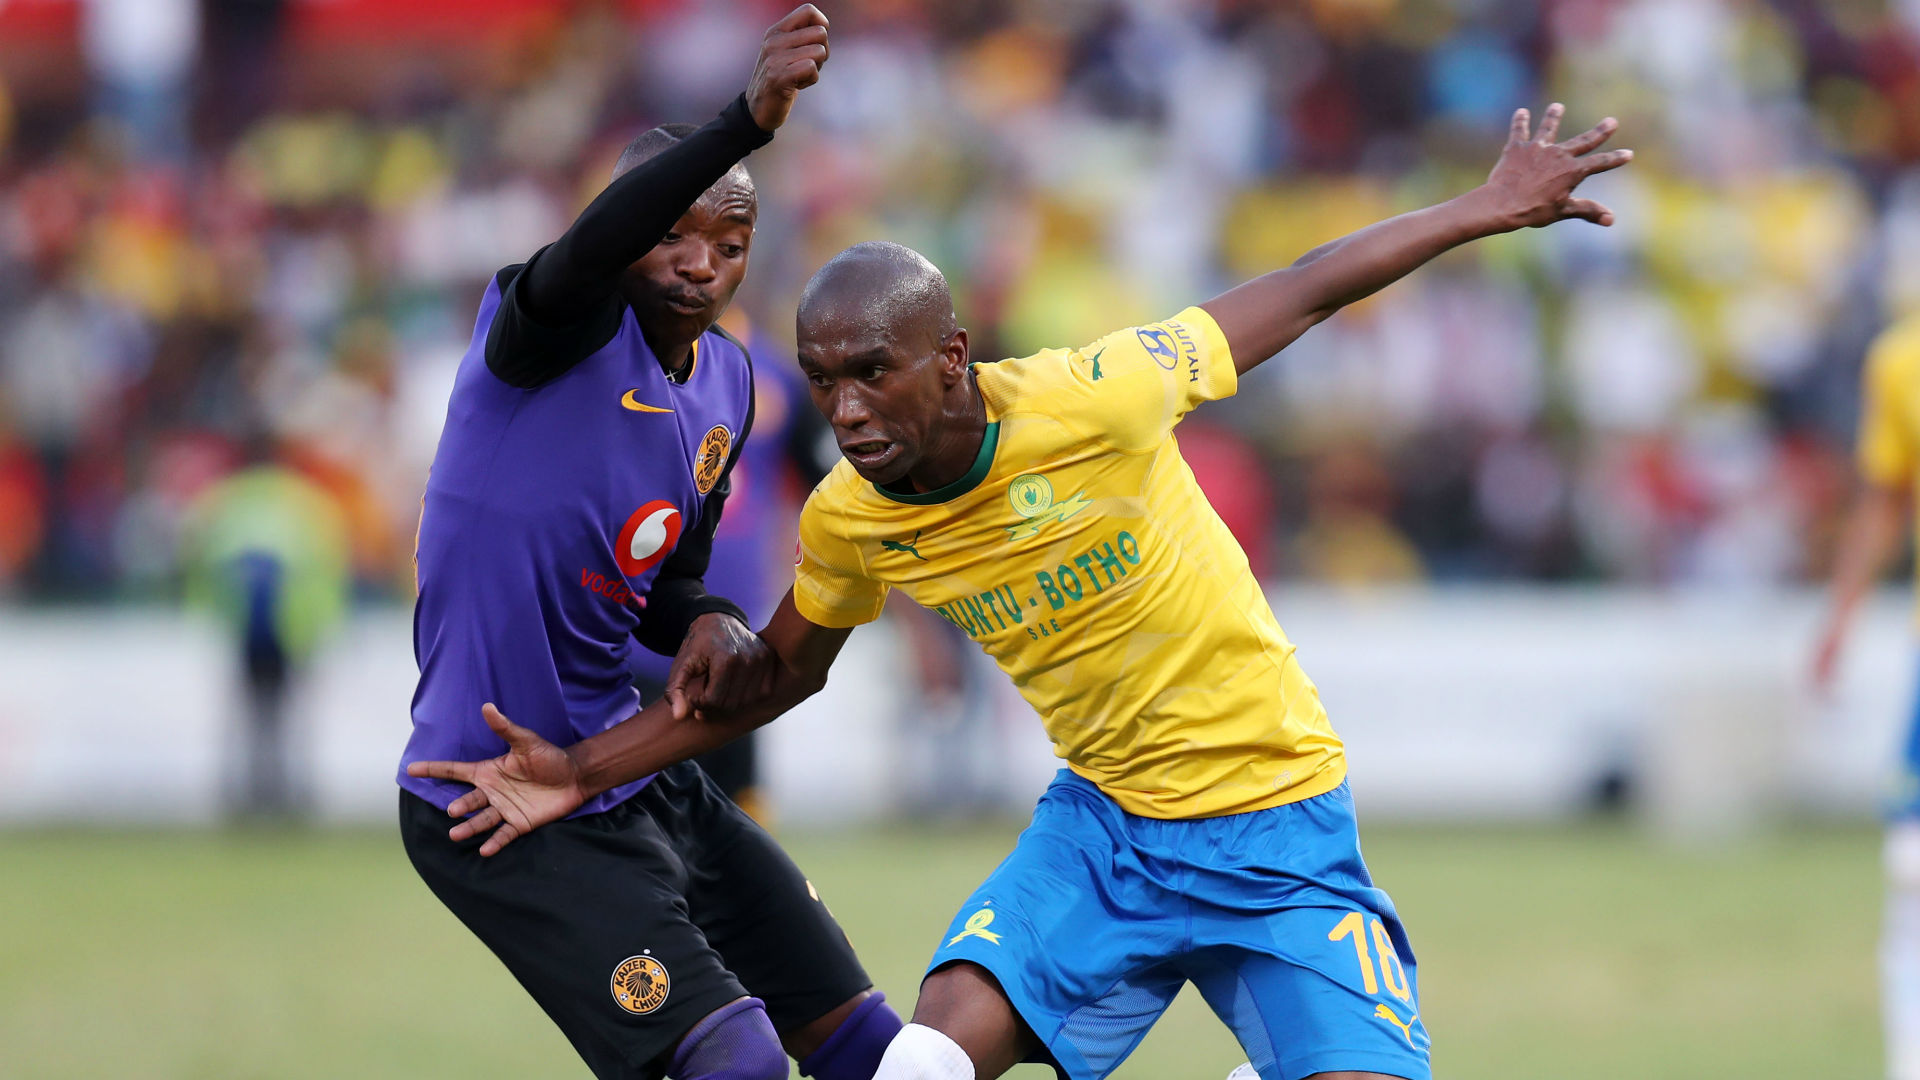 Agent: Ngcongca is not leaving Mamelodi Sundowns